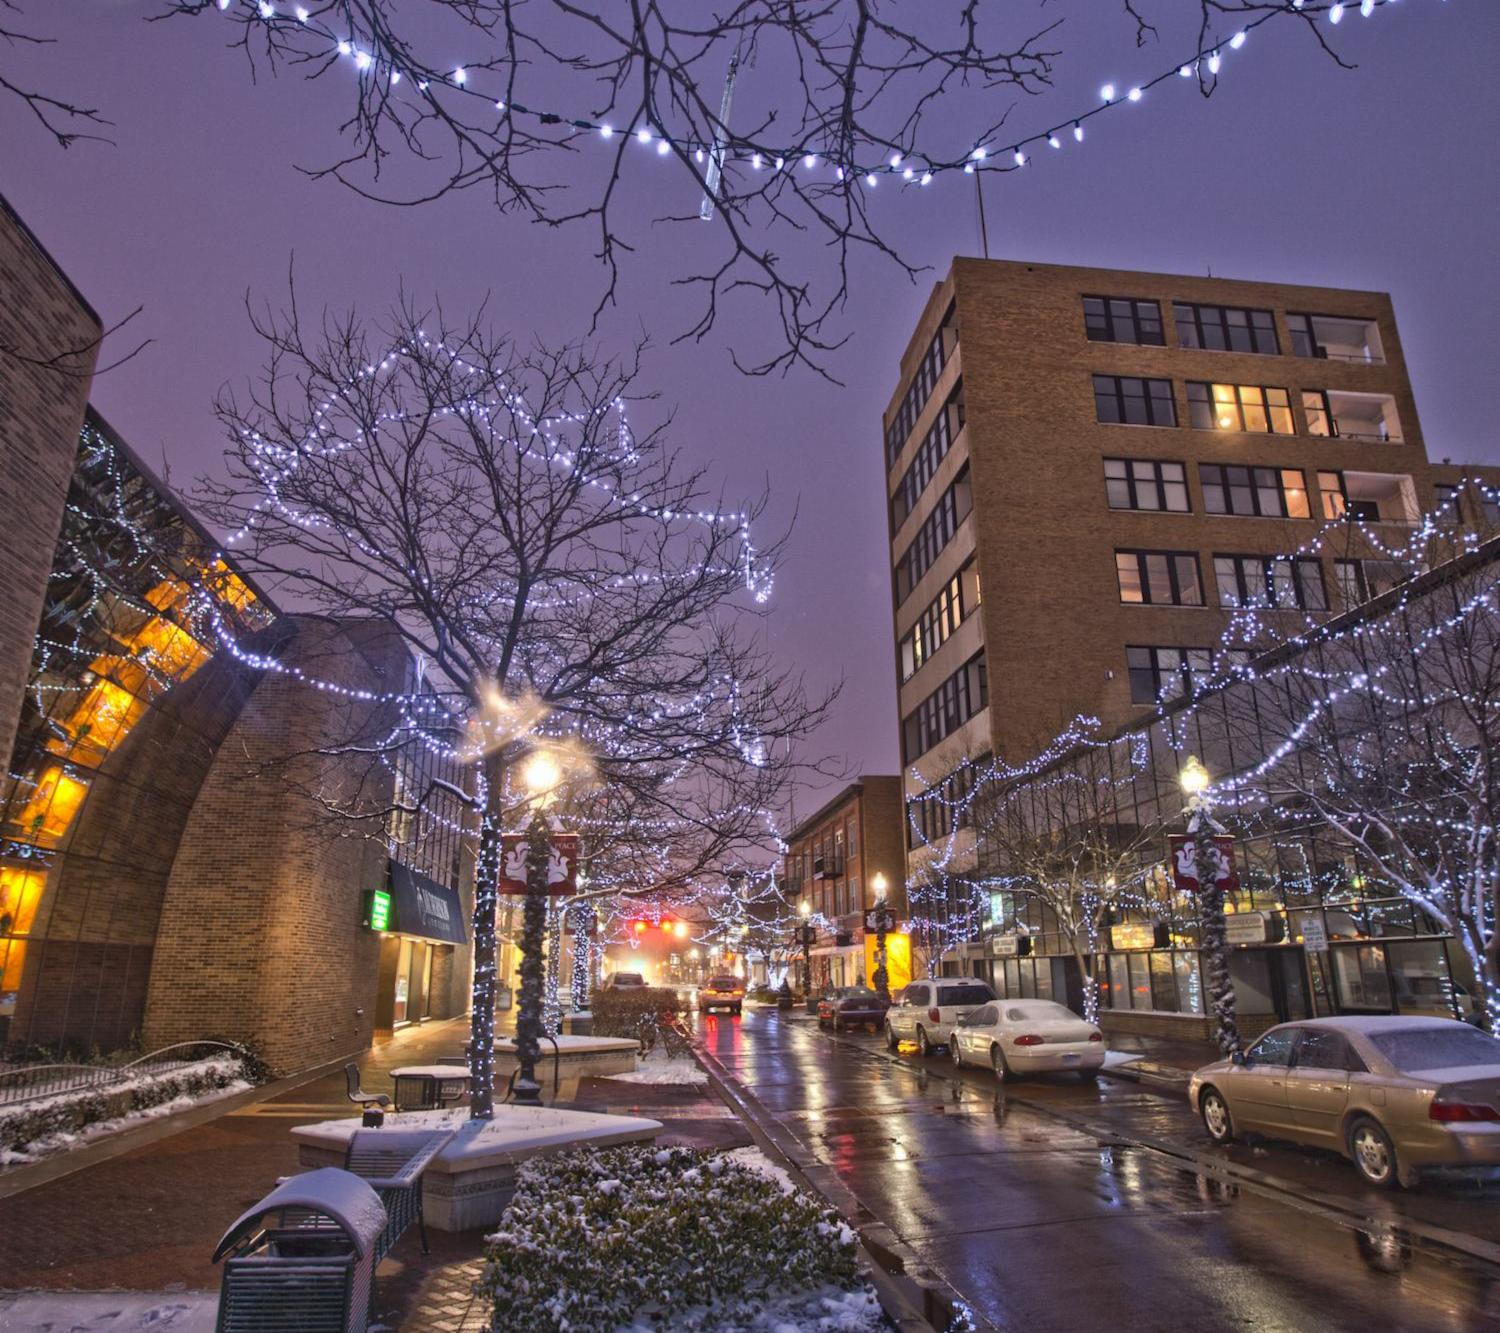 8 Great Things To Do In Kalamazoo This Week